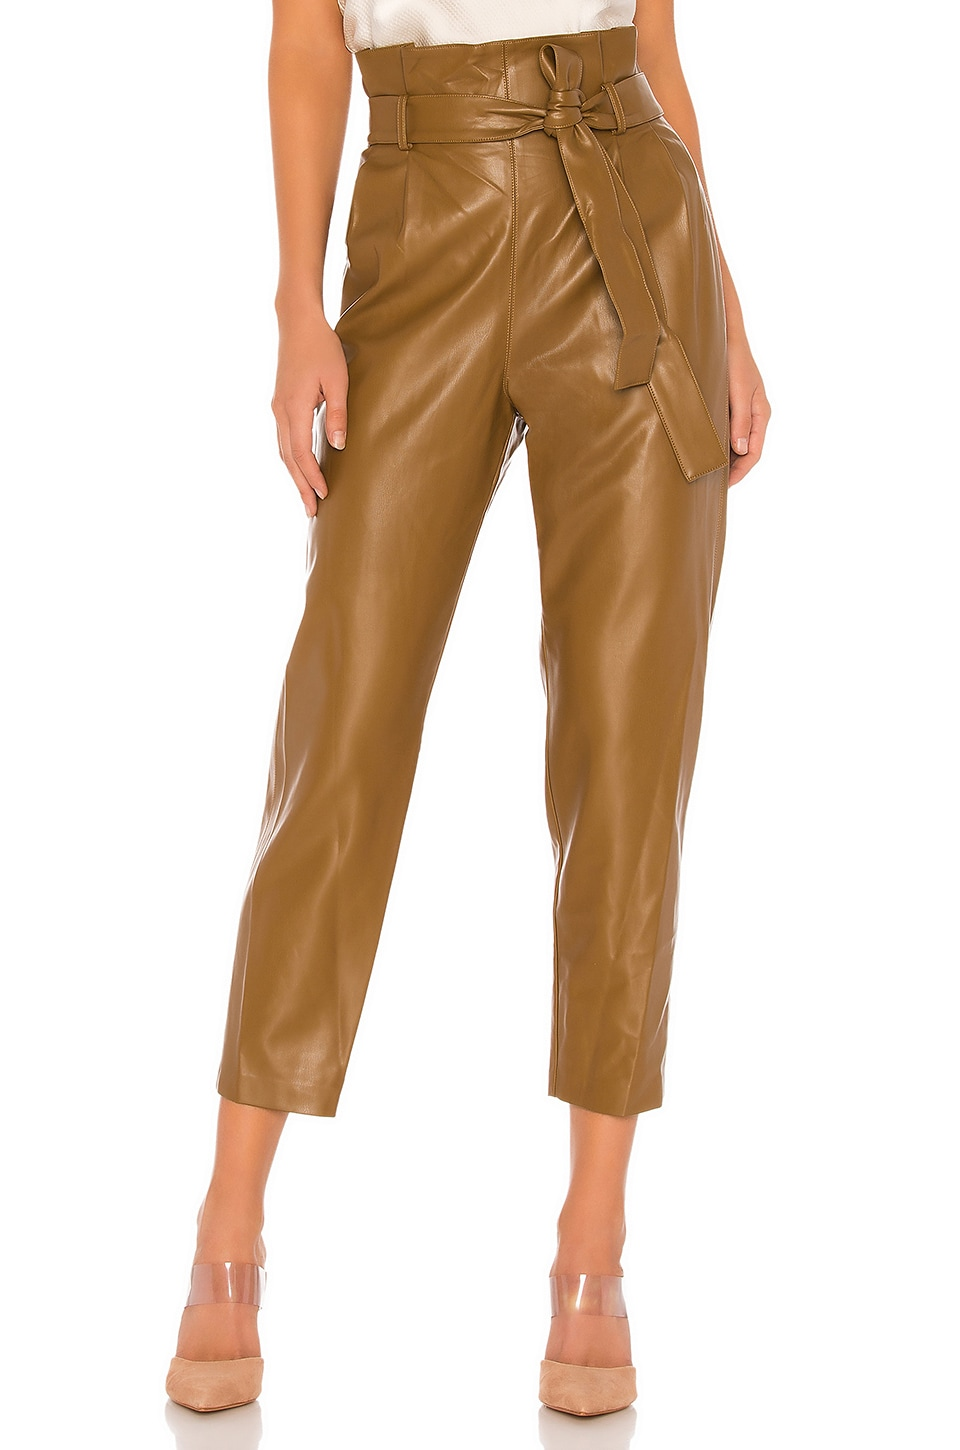 Amanda Uprichard Tessi Faux Leather Pant in Tan Leather